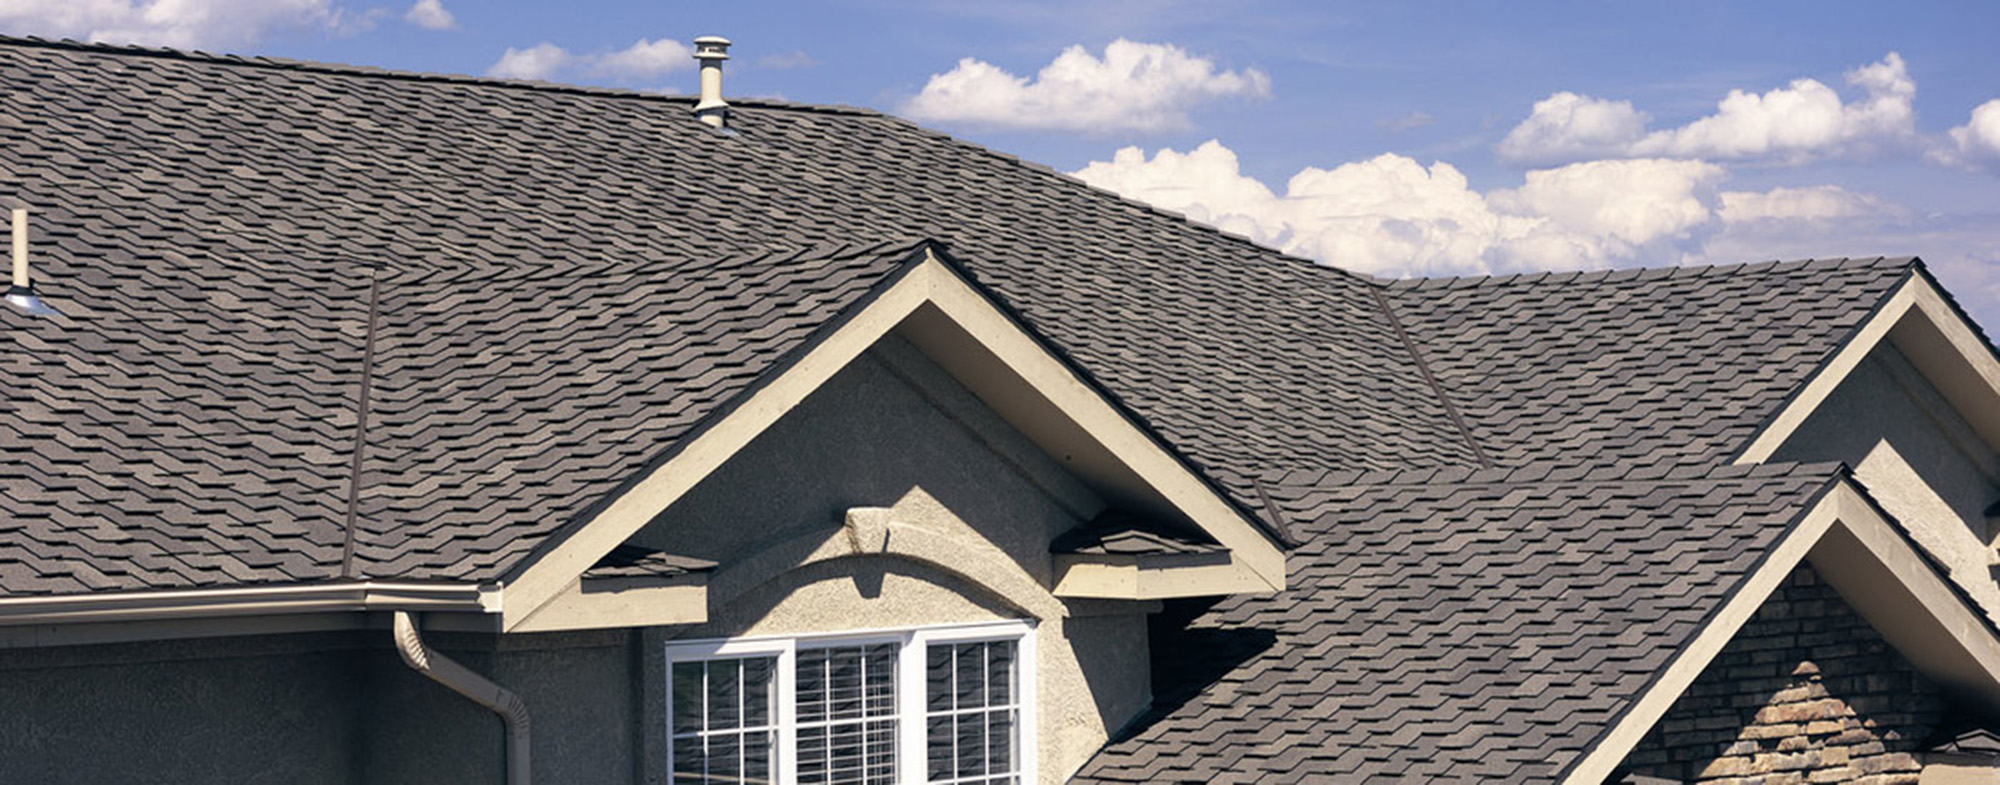 signs of roof damage nj